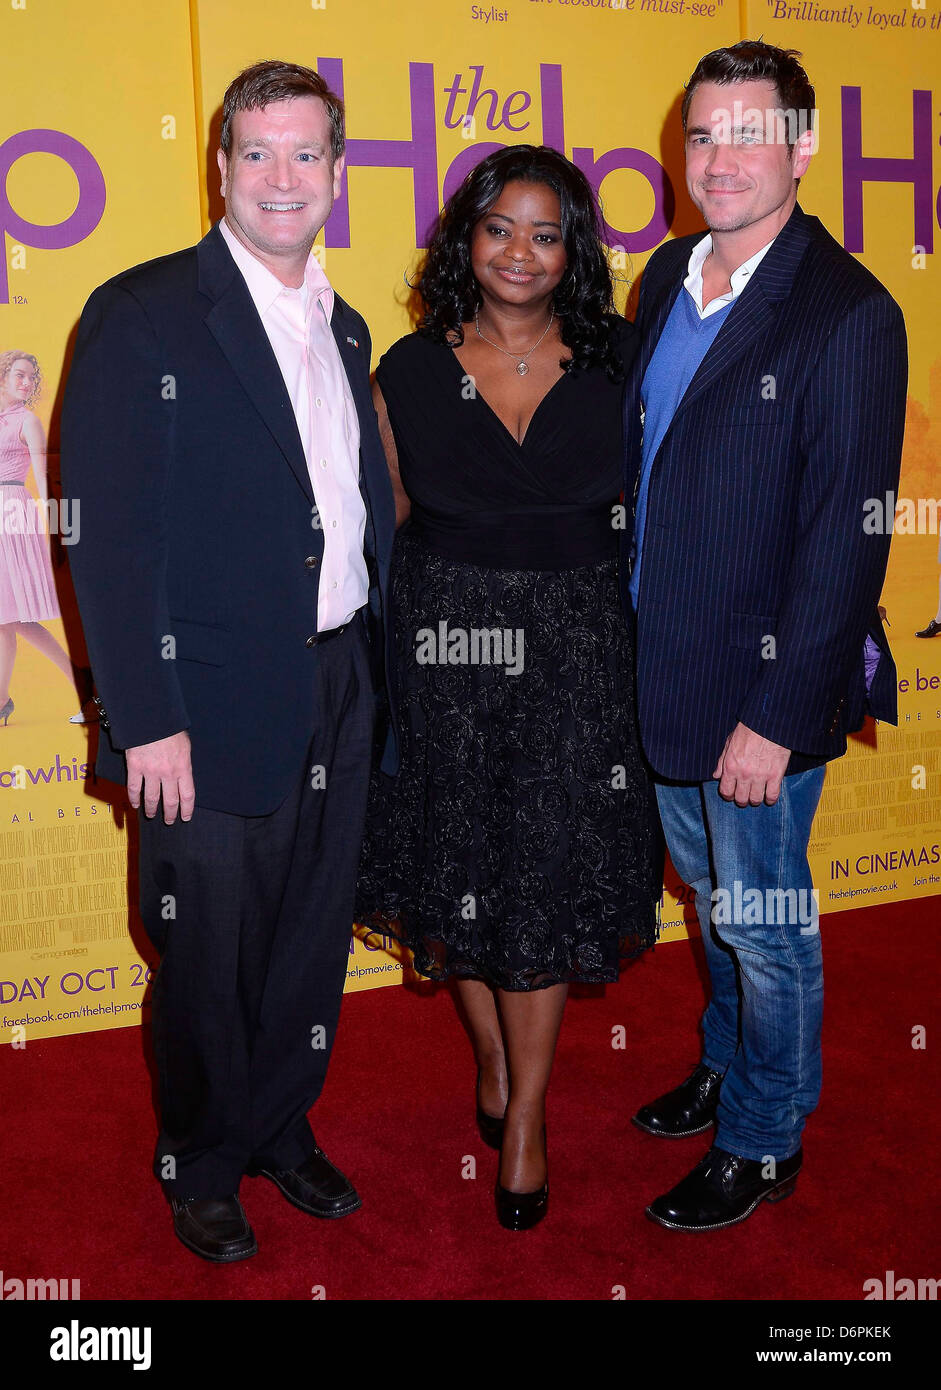 John Hennessey Nyland, Octavia Spencer, Tate Taylor Irish Premiere of 'The Help' at The Savoy Dublin, Ireland - Stock Image